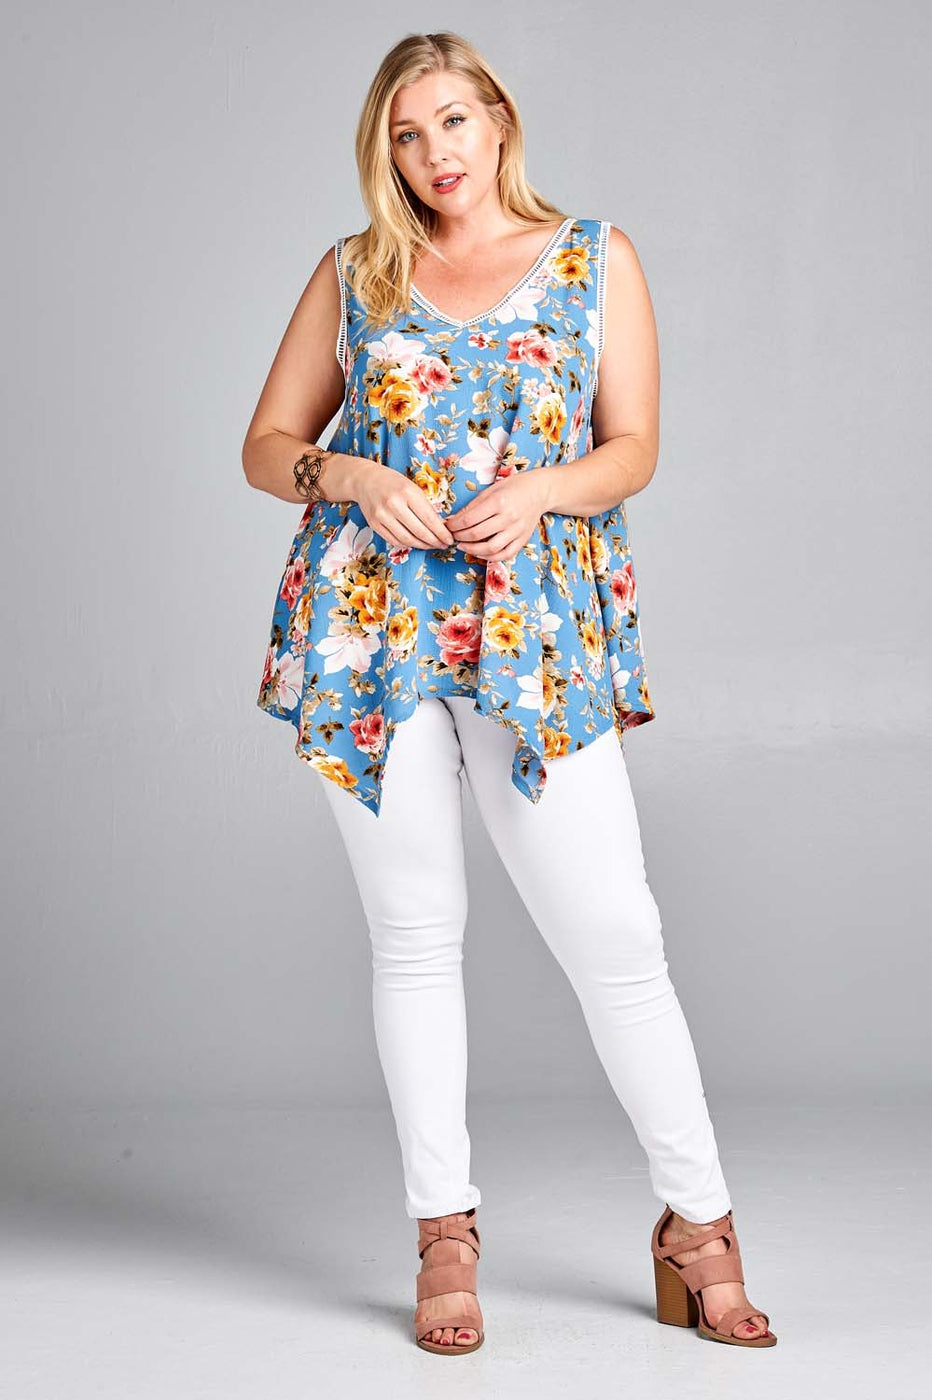 Garden Goddess Tunic in Denim Blue - Curvy - Top - MIA Boutique LLC